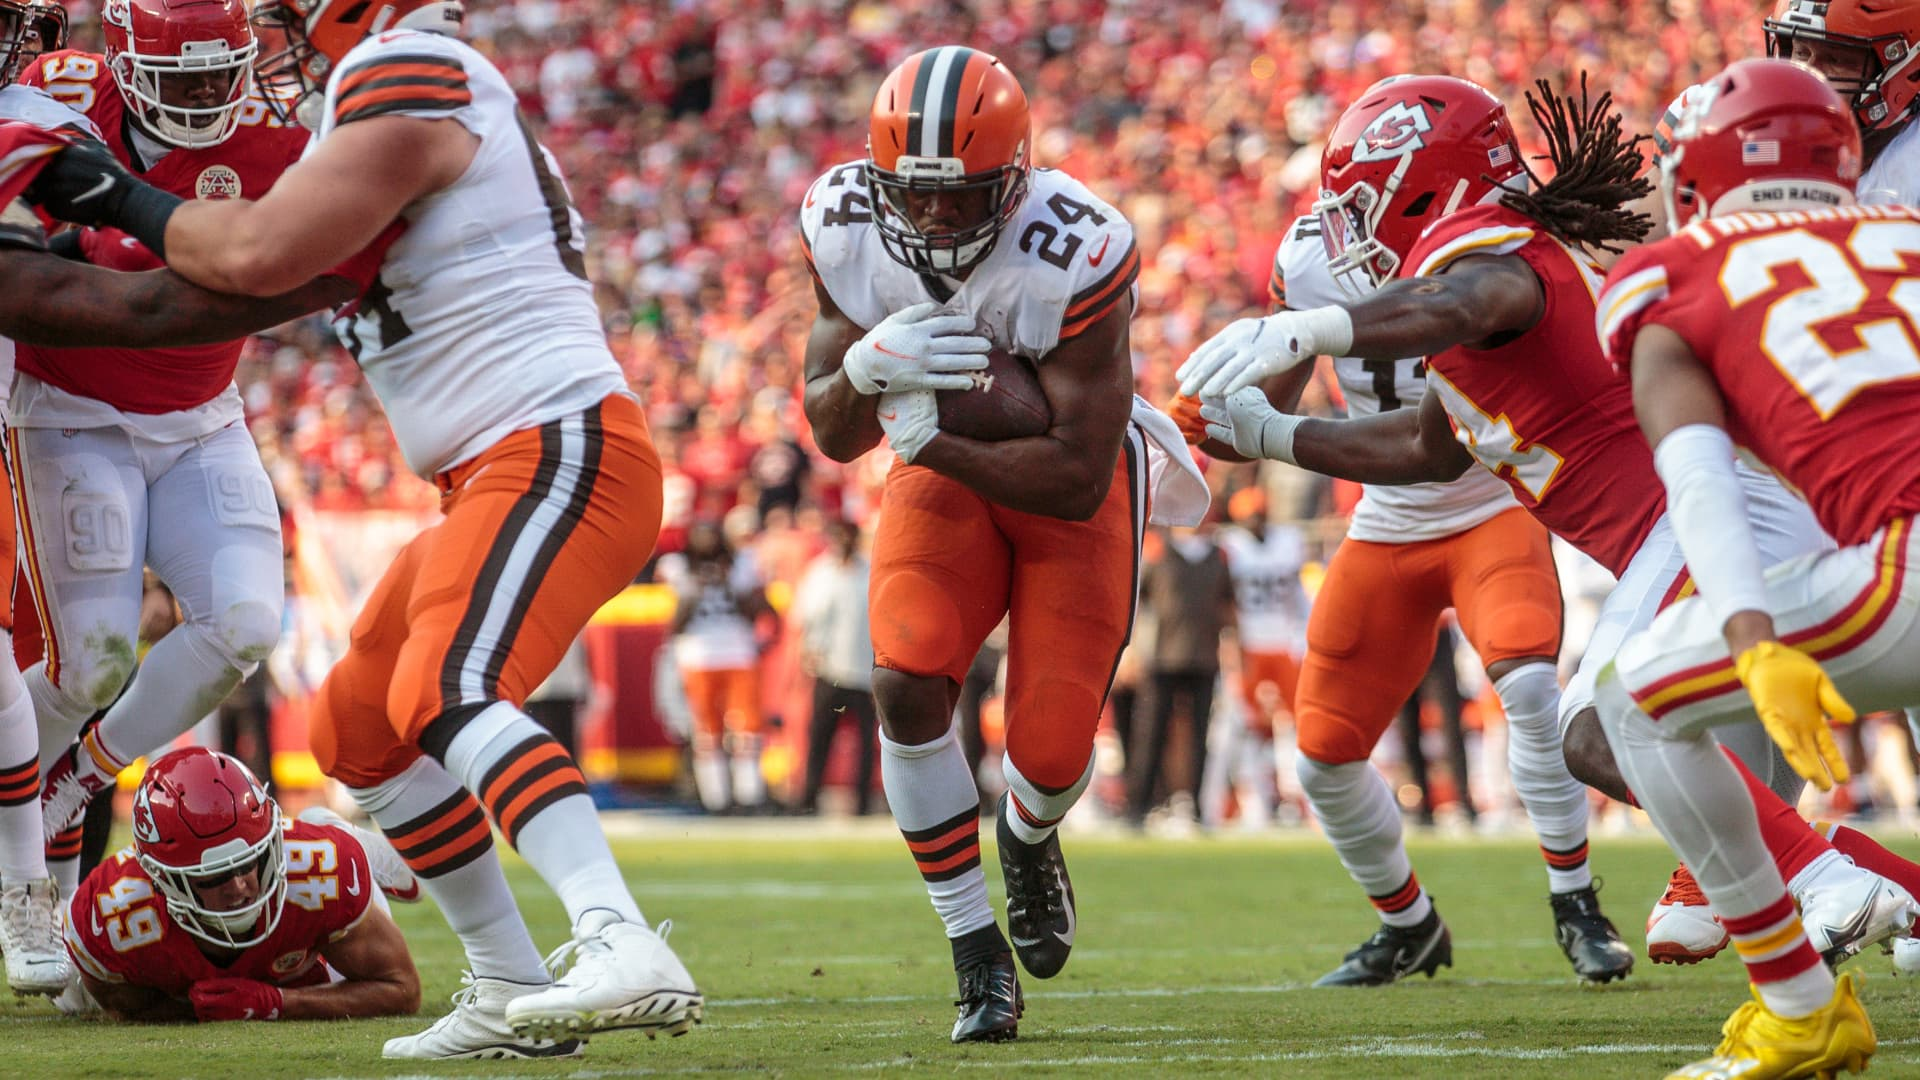 Cleveland Browns running back Nick Chubb (24) finds an opening in the line against the Kansas City Chiefs on September 12th at GEHA field at Arrowhead Stadium in Kansas City, Missouri.